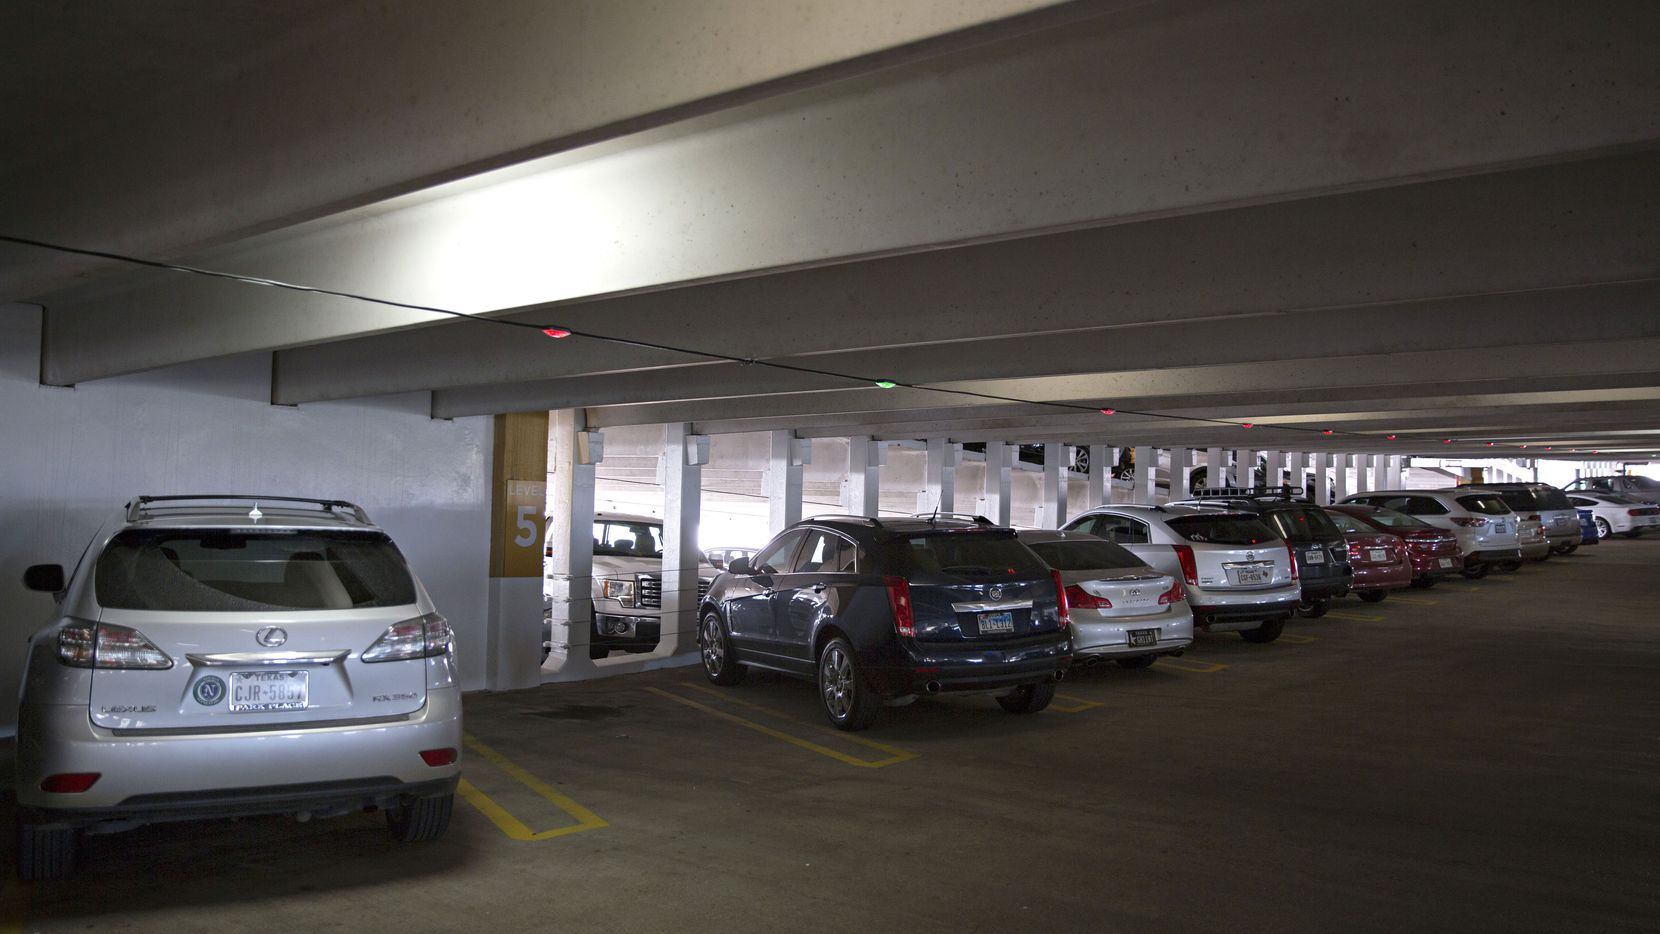 Demand for parking will ease with new technology, developers and futurists predict.